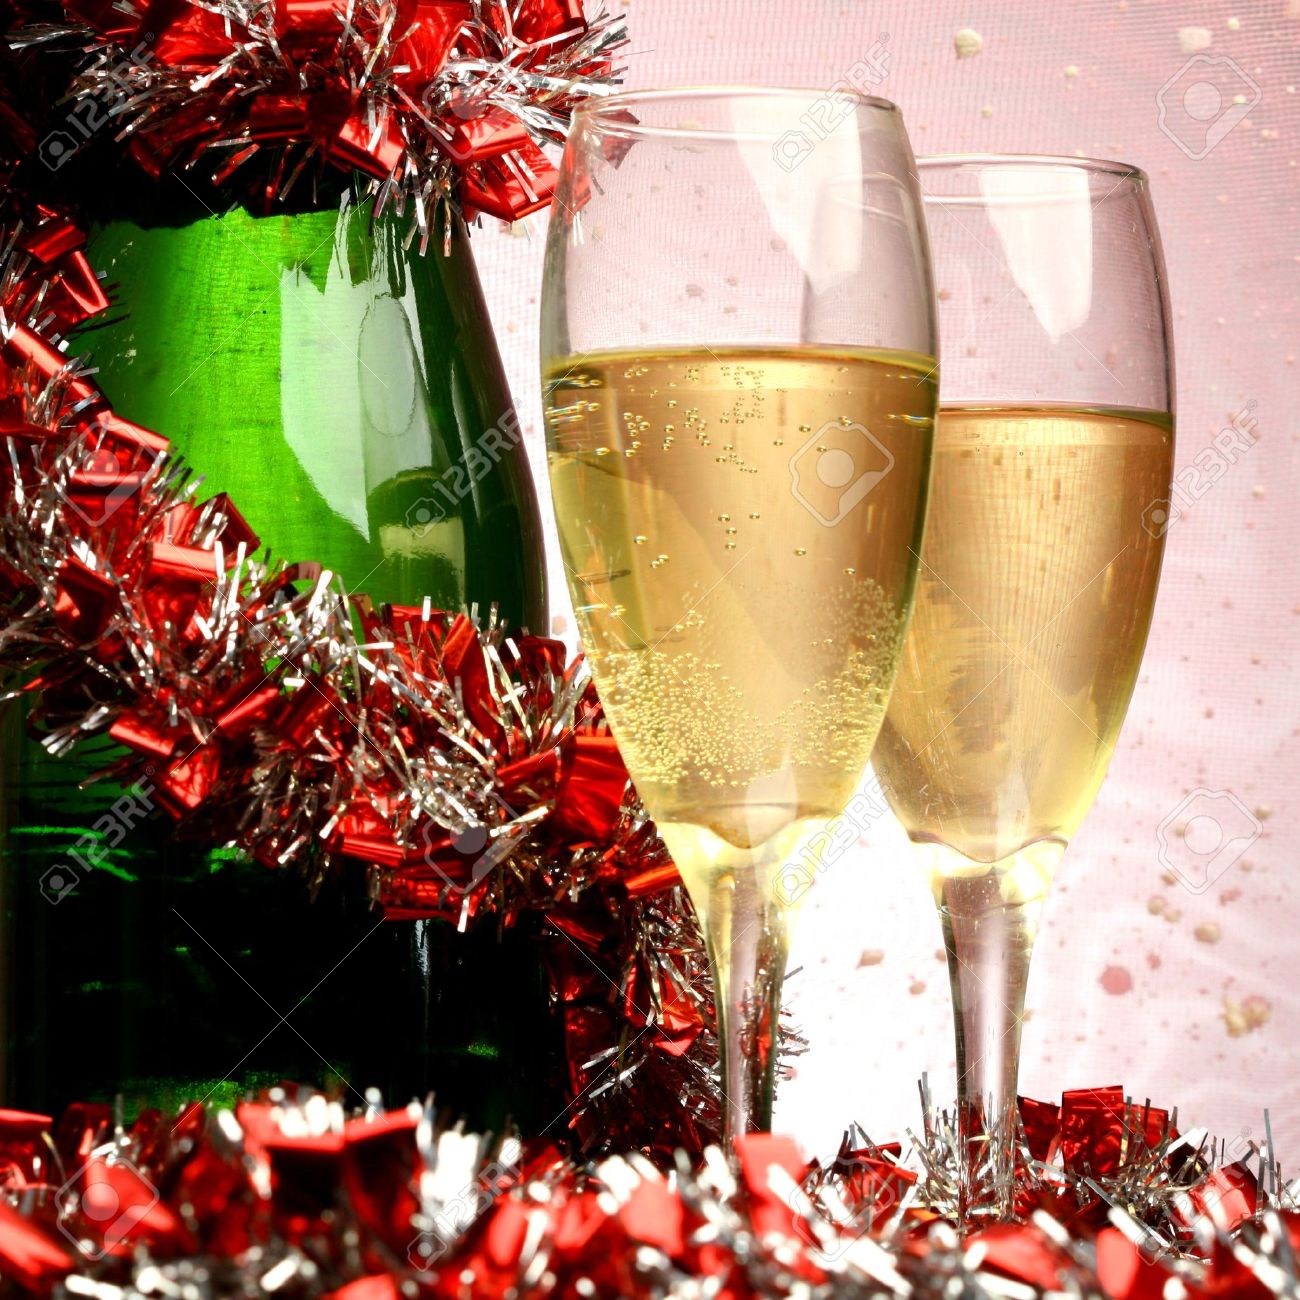 New Year's card with champagne decoration Stock Photo - 5956153